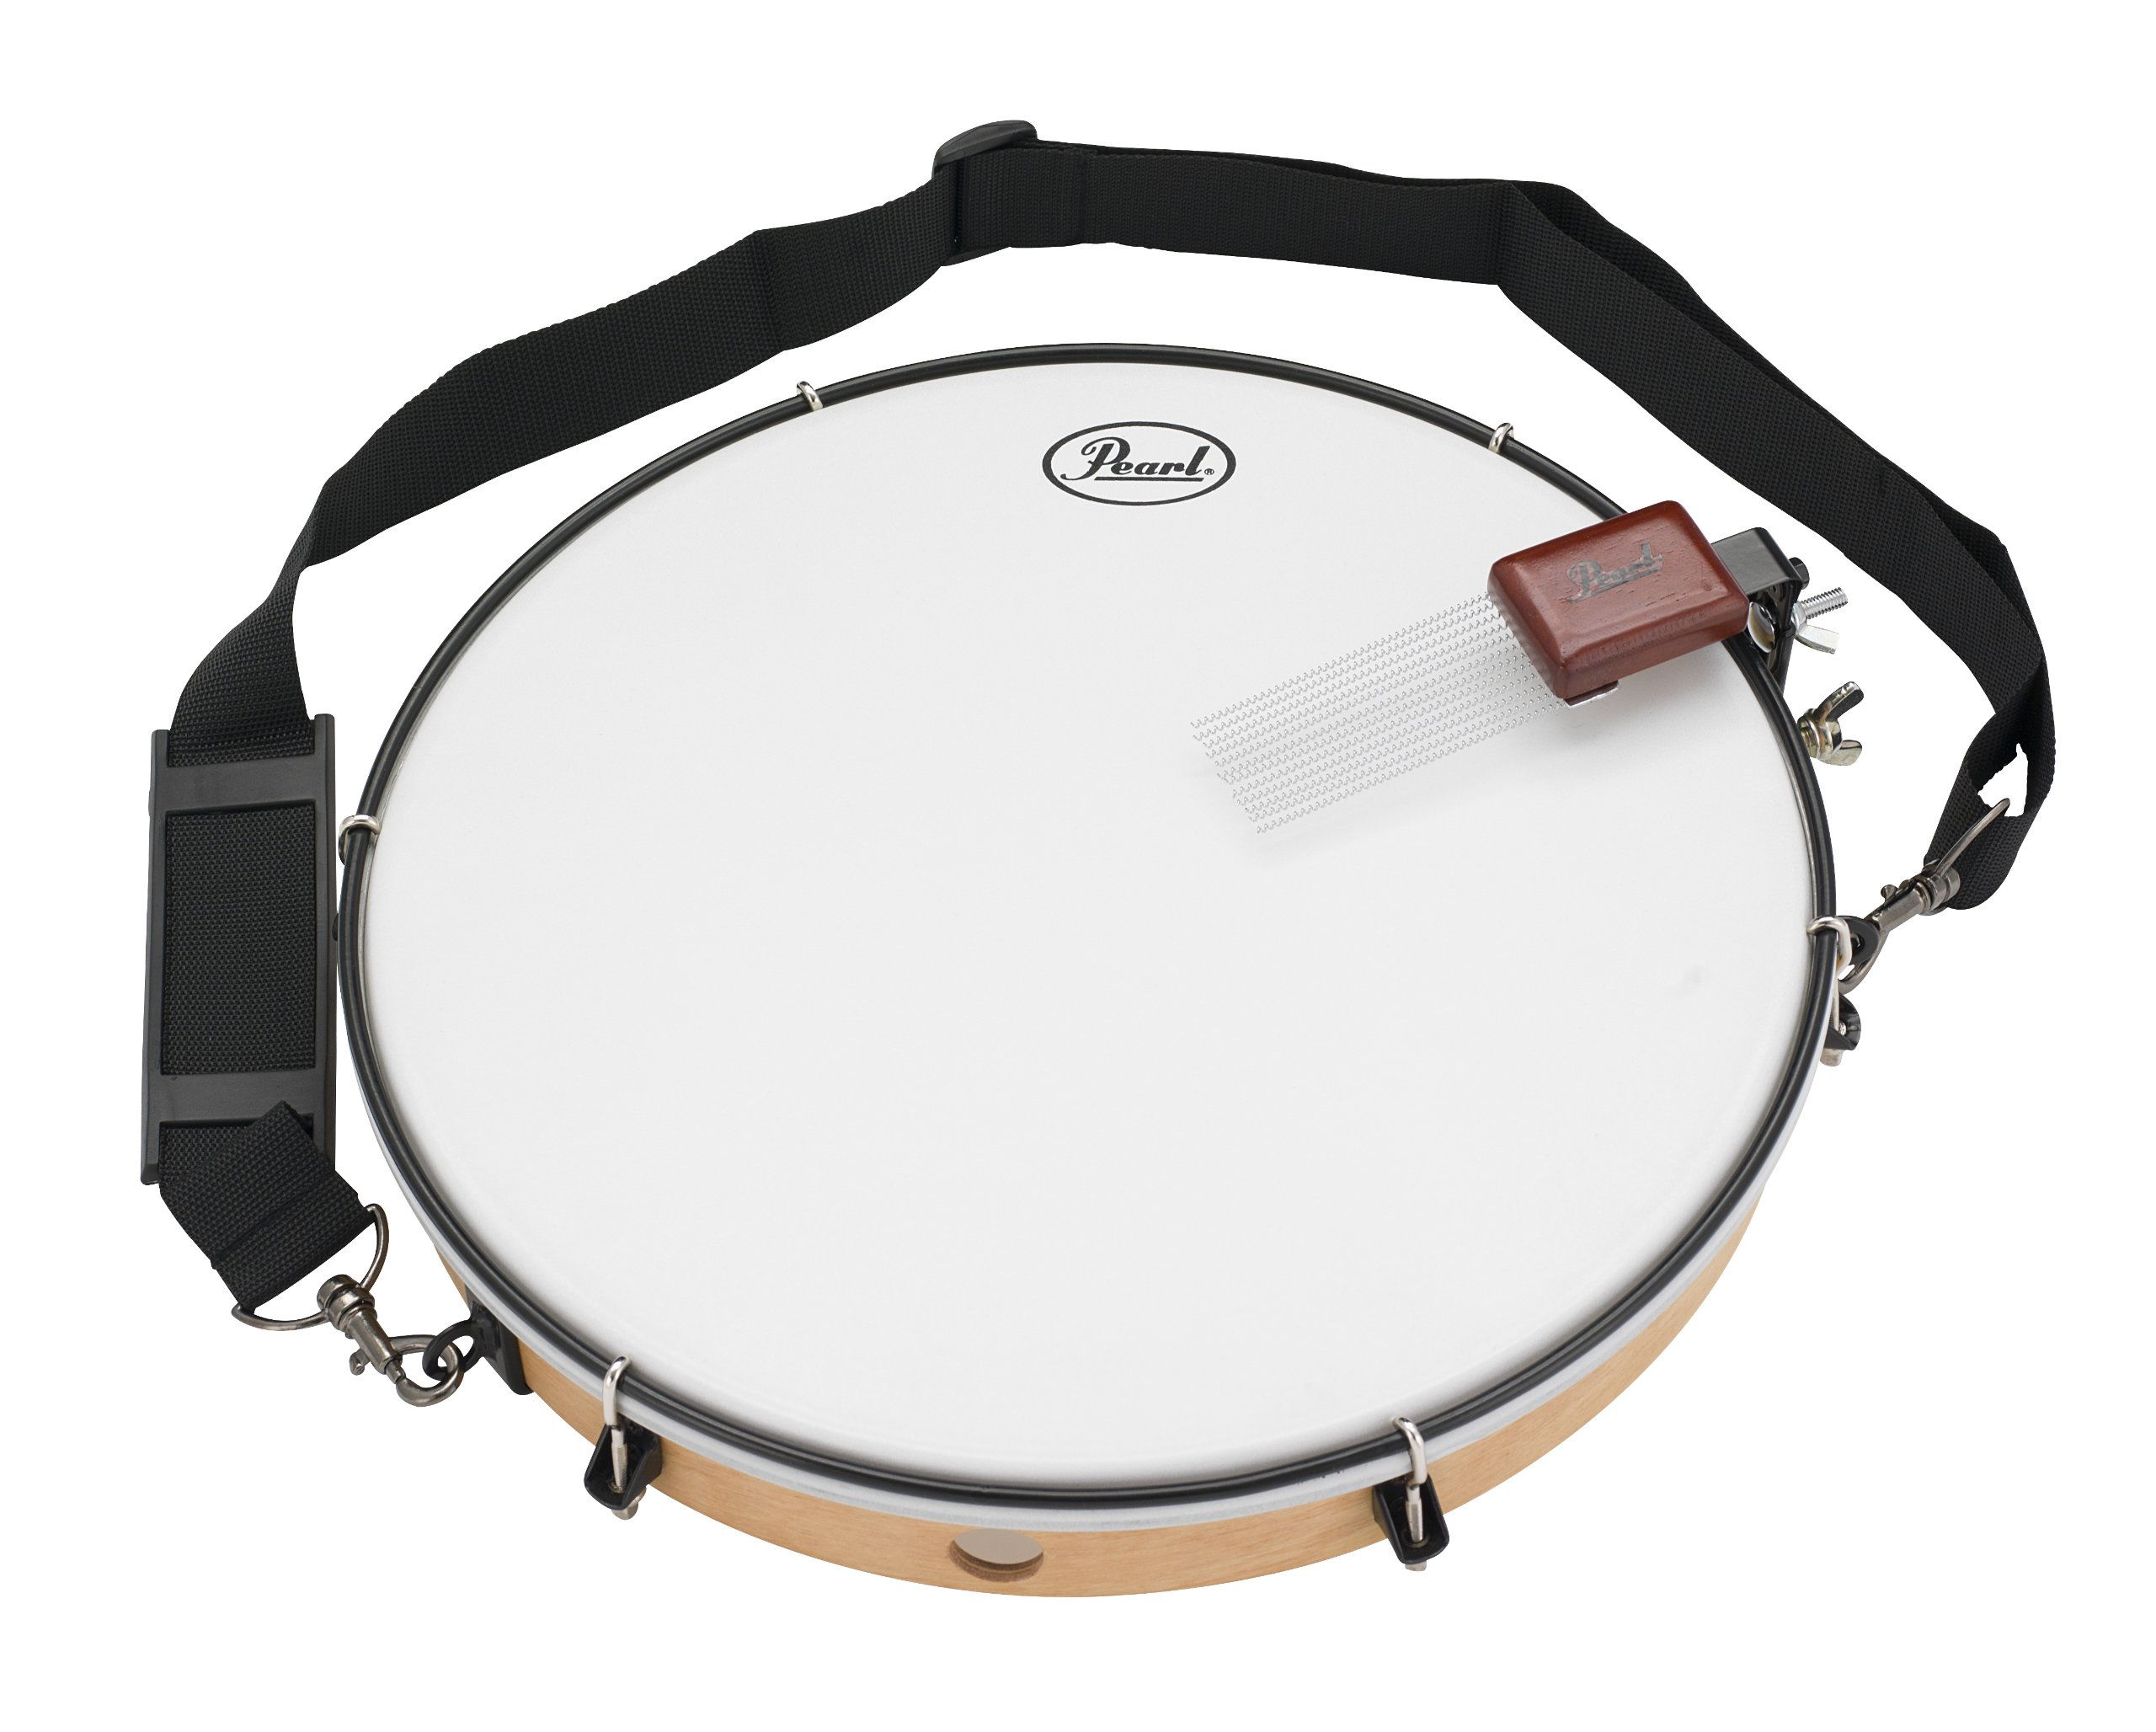 Pearl PFR14HK Hip Kit Fram Drum and Accessory Pack